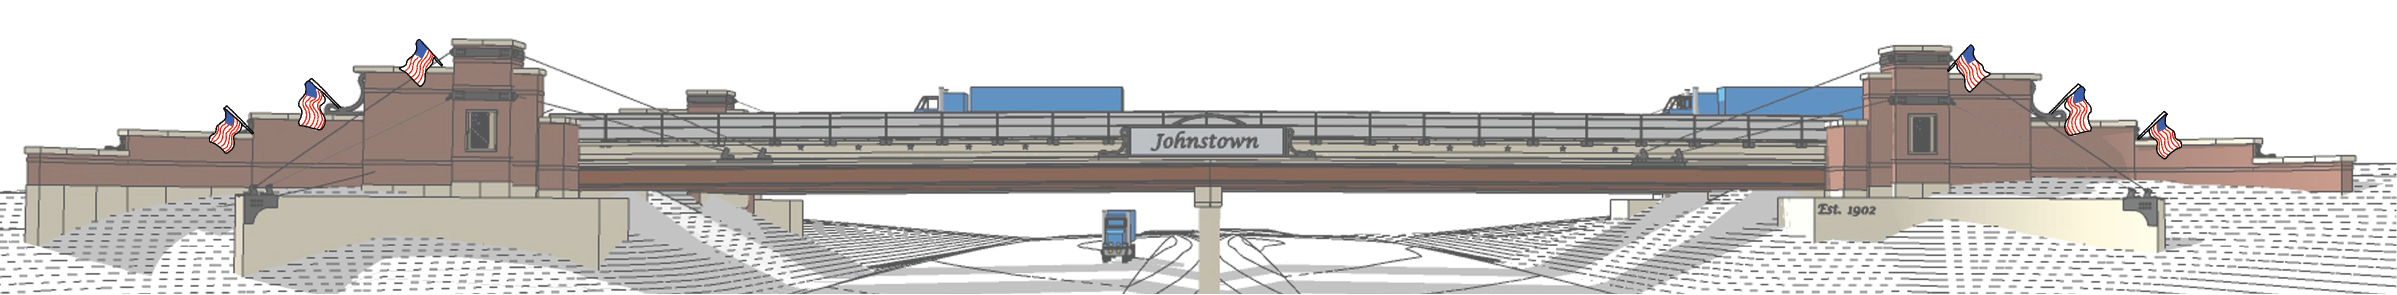 """Picture of Johnstown Briddge at HWY 60 and I25 aesthetic changes. Featuring flag poles on either side of the bridge as well as a classically styled """"Johnstown"""" text in the center. The bridge is brown and brick"""